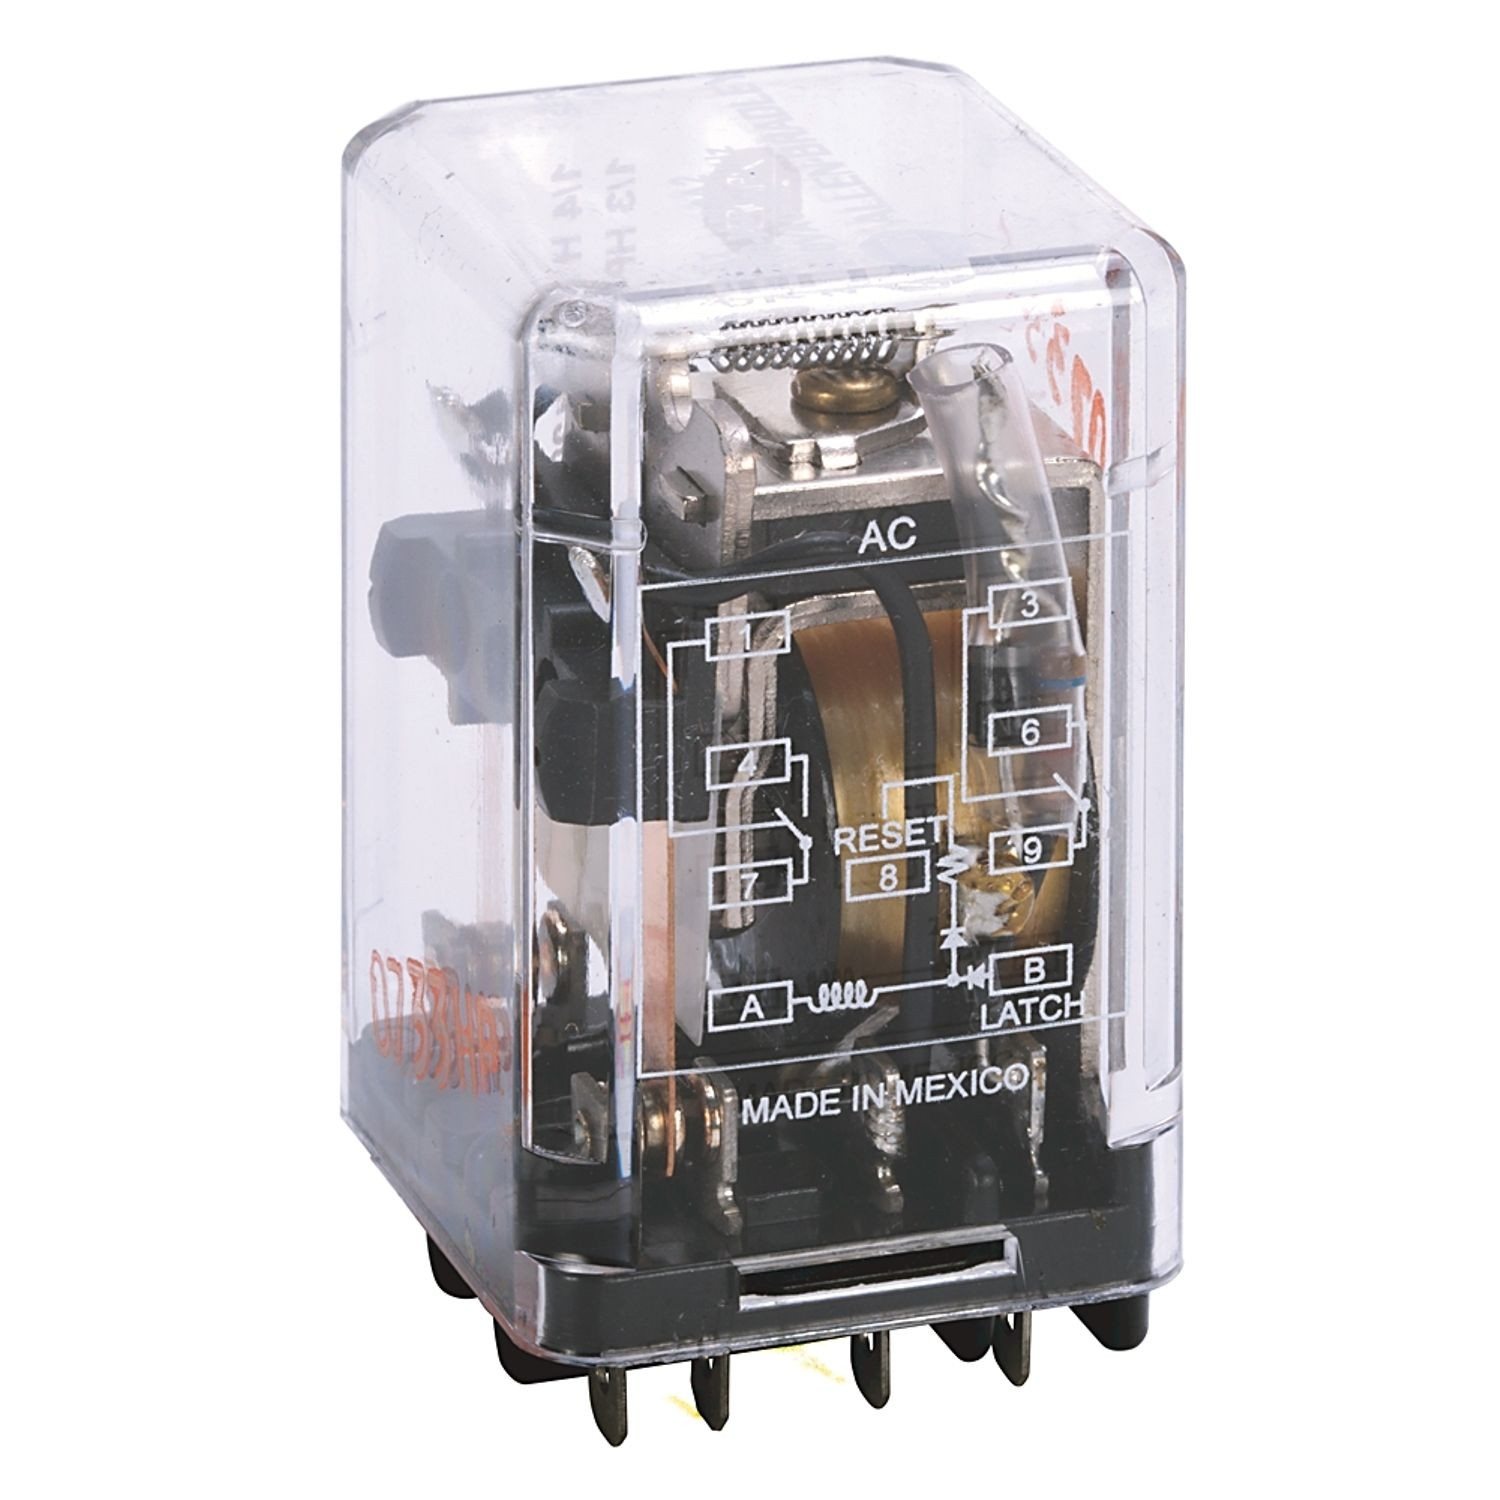 Allen Bradley 700 Hj General Purpose Magnetic Latching Relay 10 Dpdt Bistable Amp Contact 24v Dc